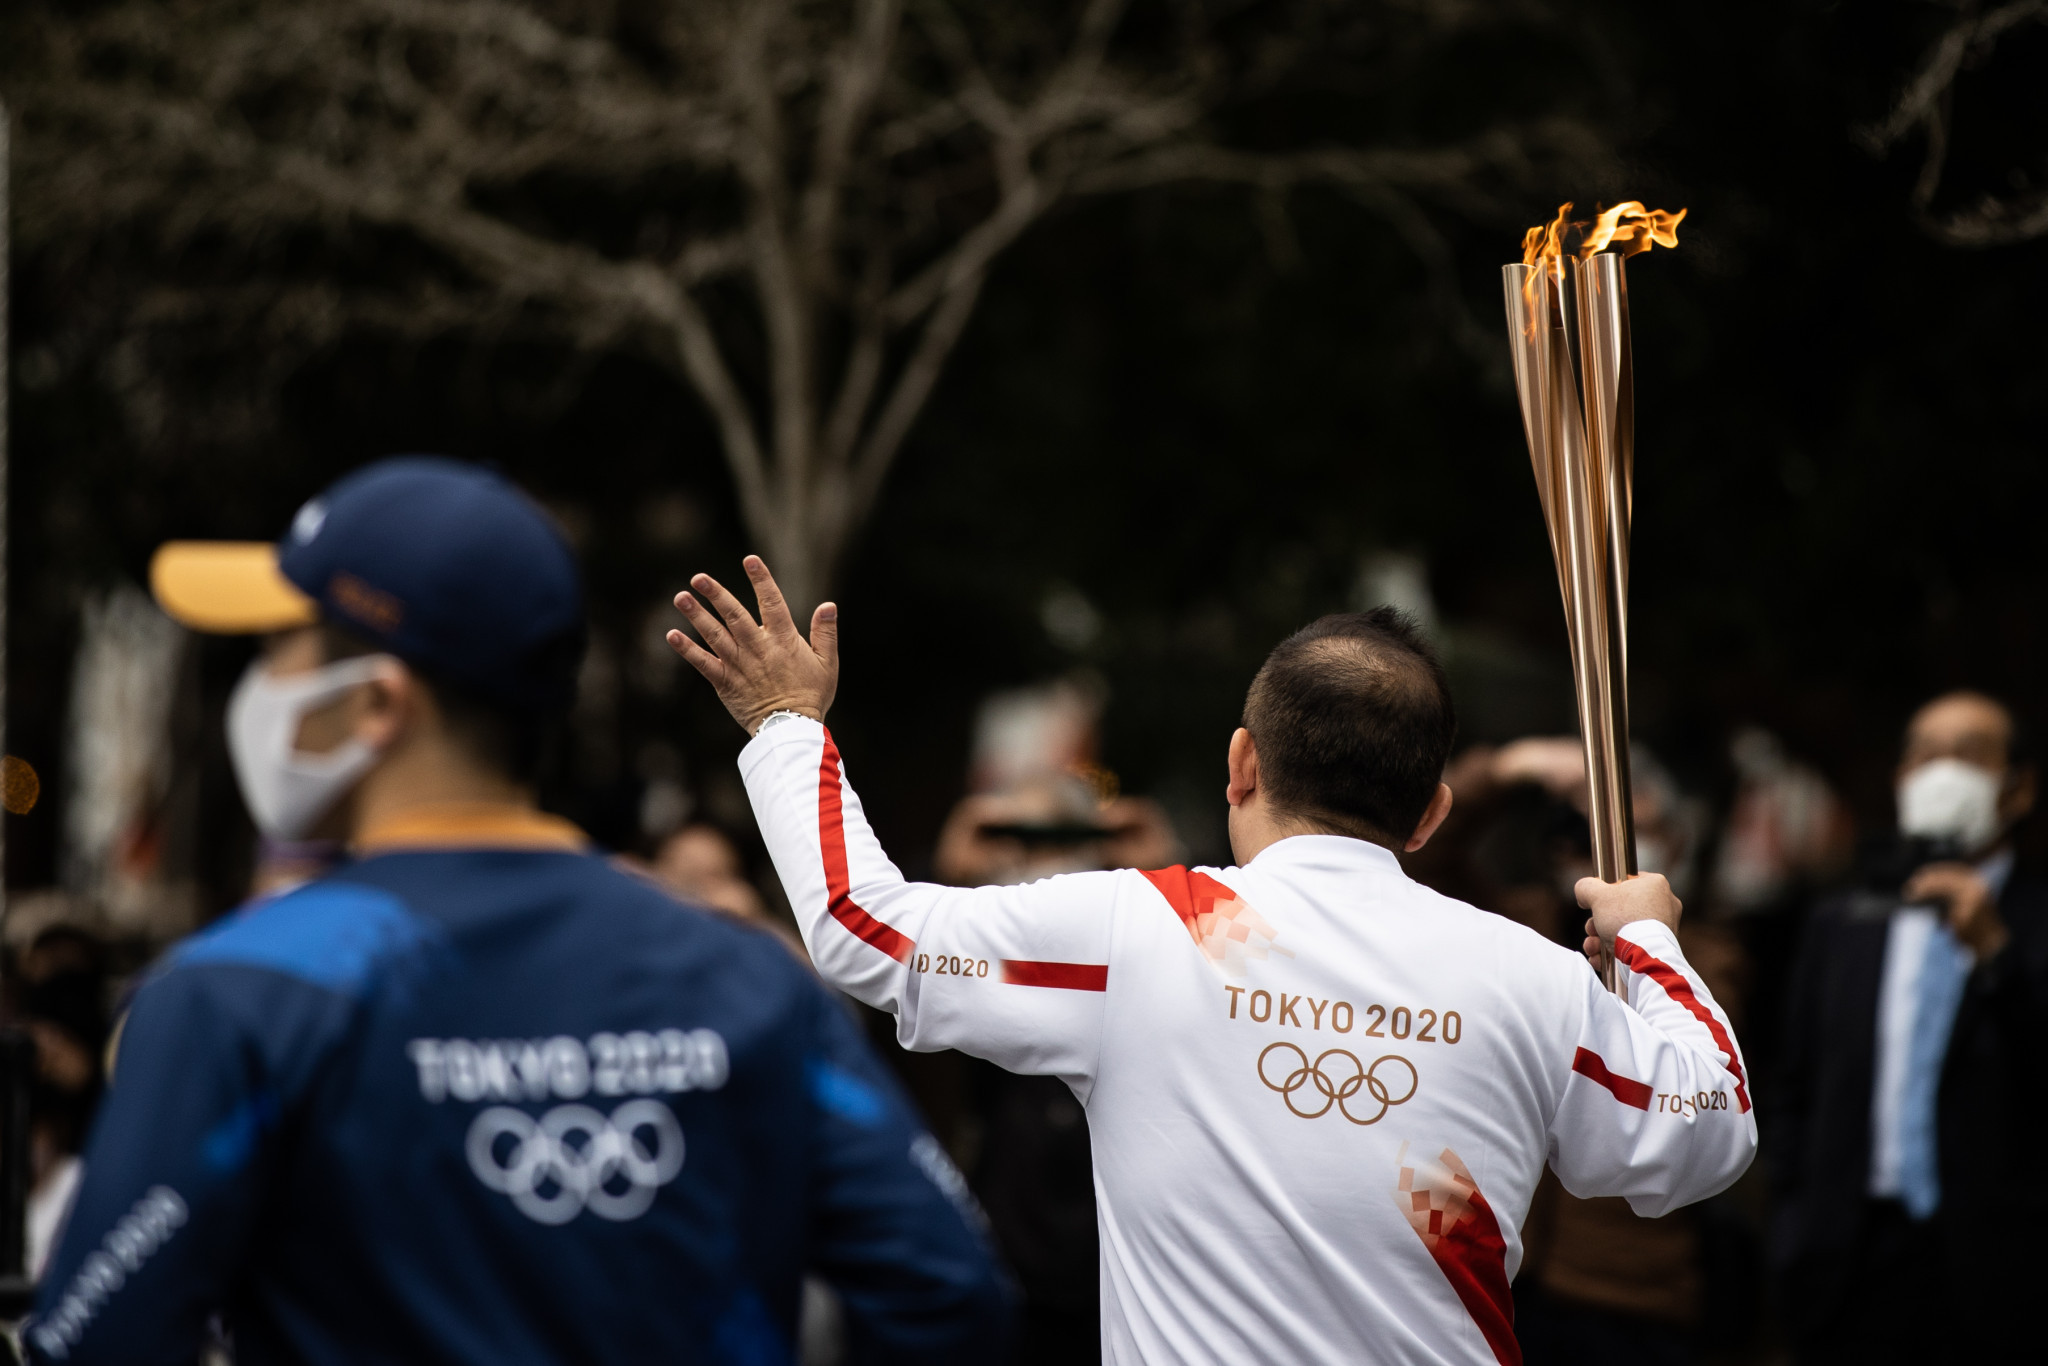 """Restart of Tokyo 2020 Torch Relay is """"great inspiration"""" says ANOC President Mitchell"""